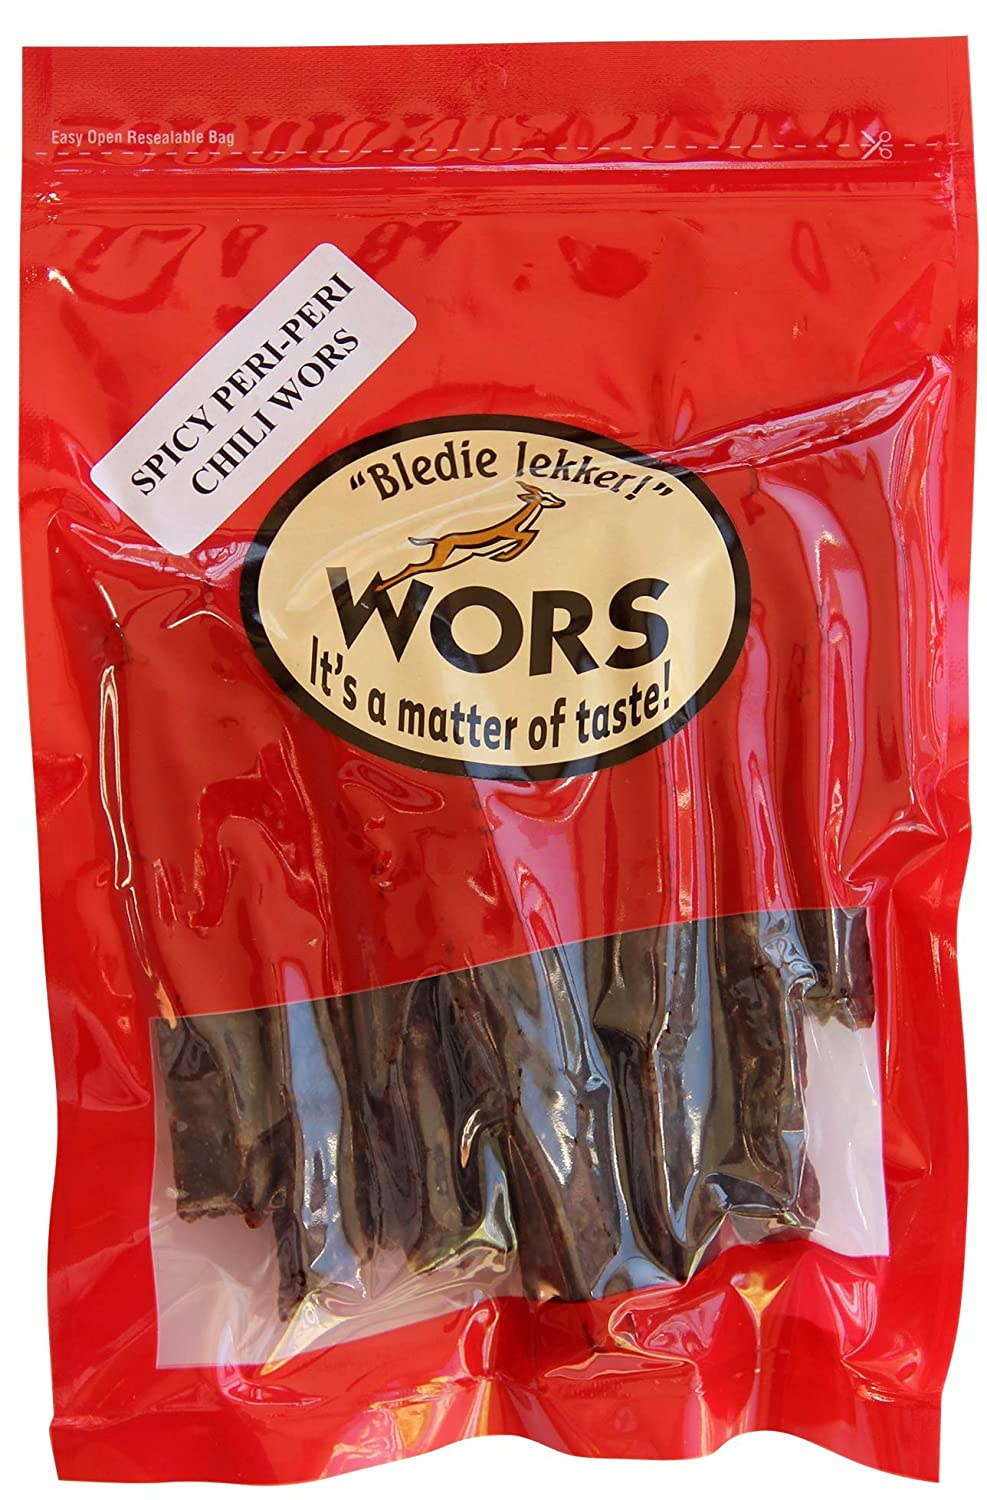 Chilli Droewors (Dried Sausage) 8oz